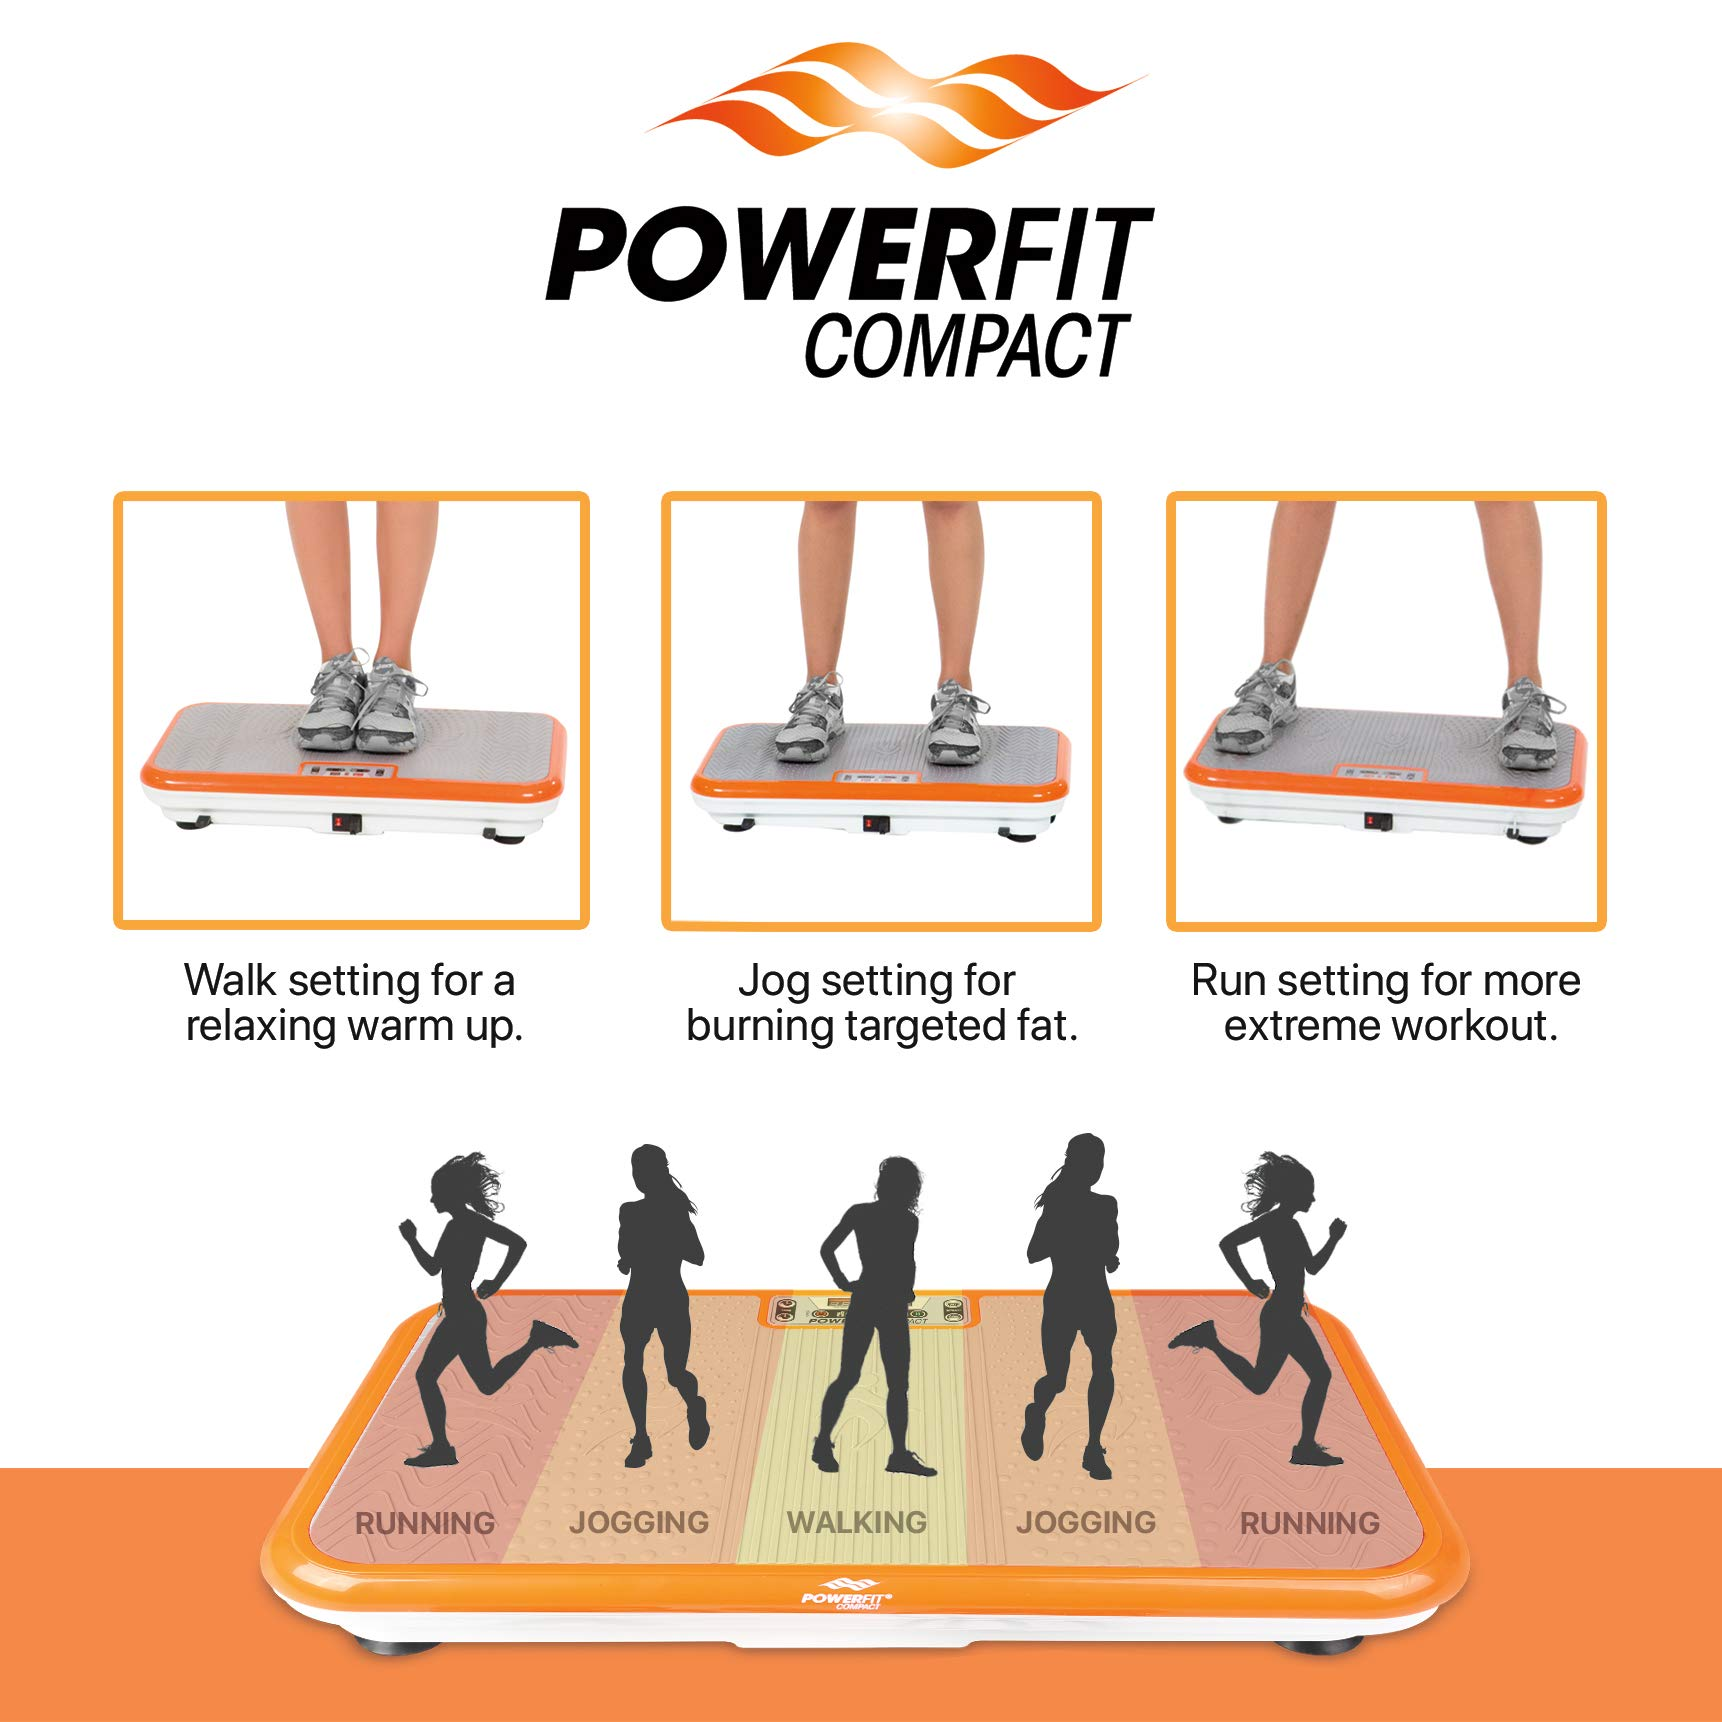 Power Fit Whole Body Vibration Exercise Platform - Home Workout Vibrating Step Equipment by Power Fit (Image #2)